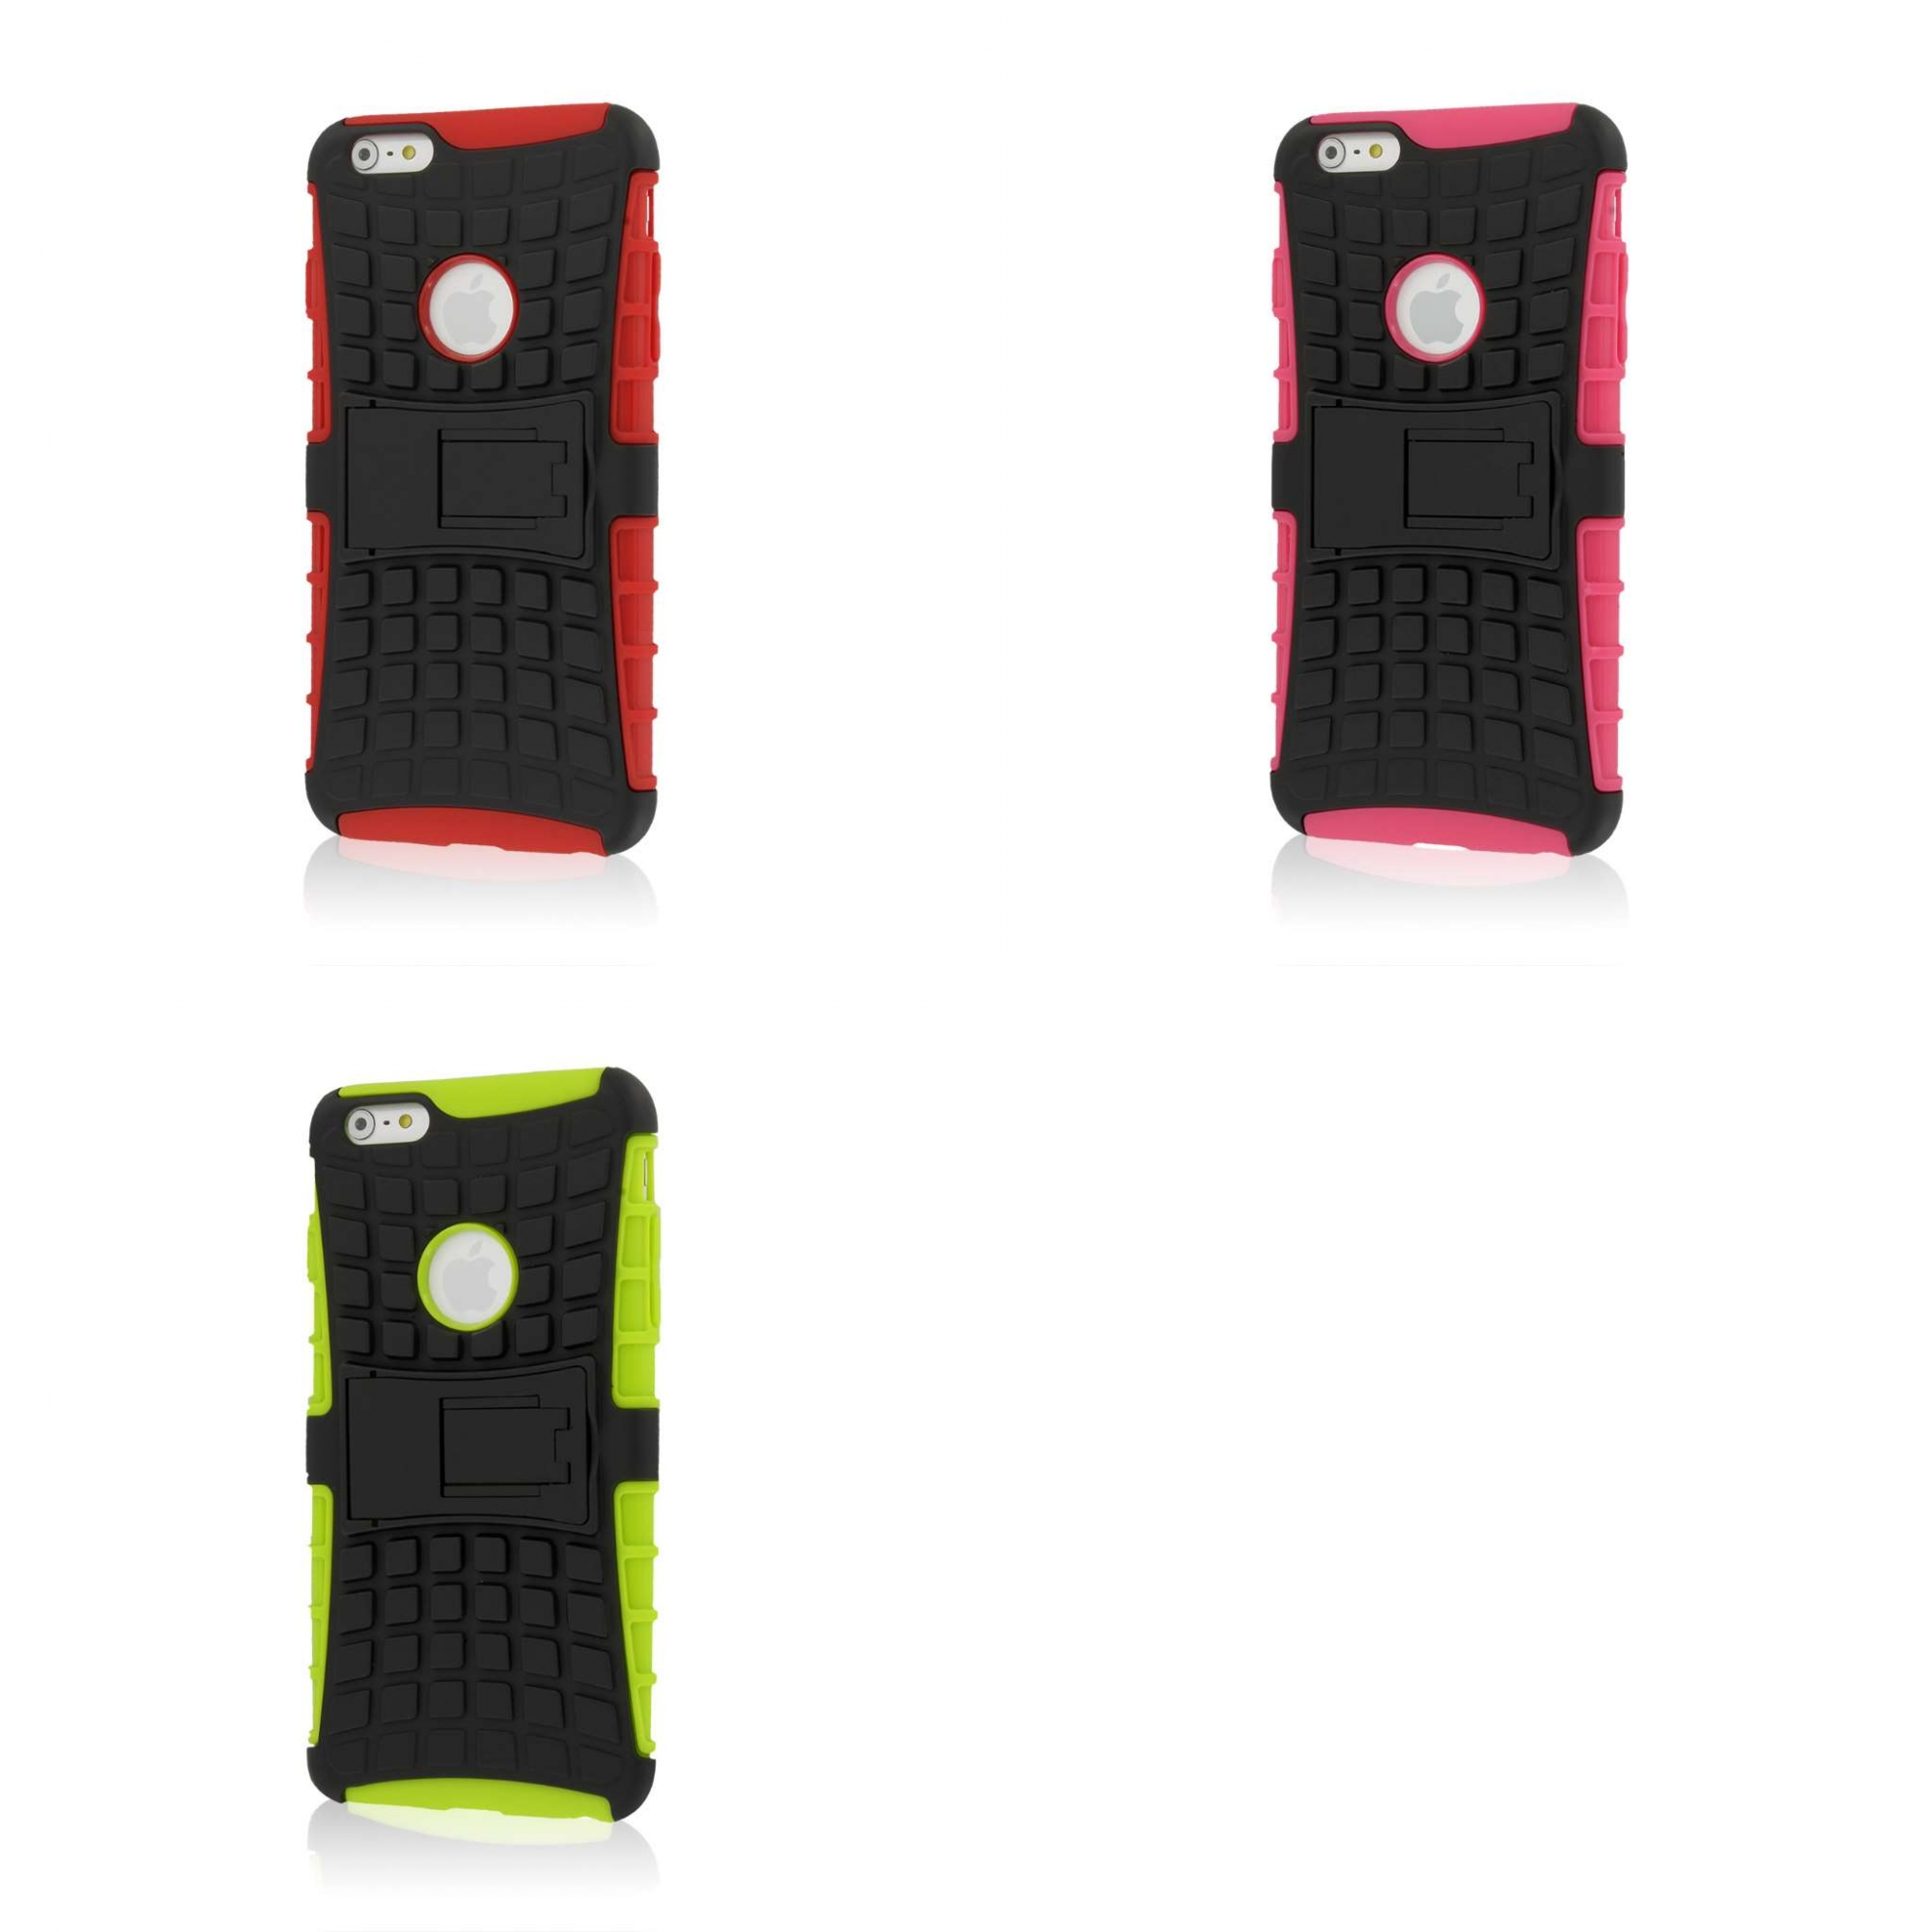 Apple iPhone 6 6S Plus - Red Combo Pack : MPERO IMPACT SR - Kickstand Case Cover